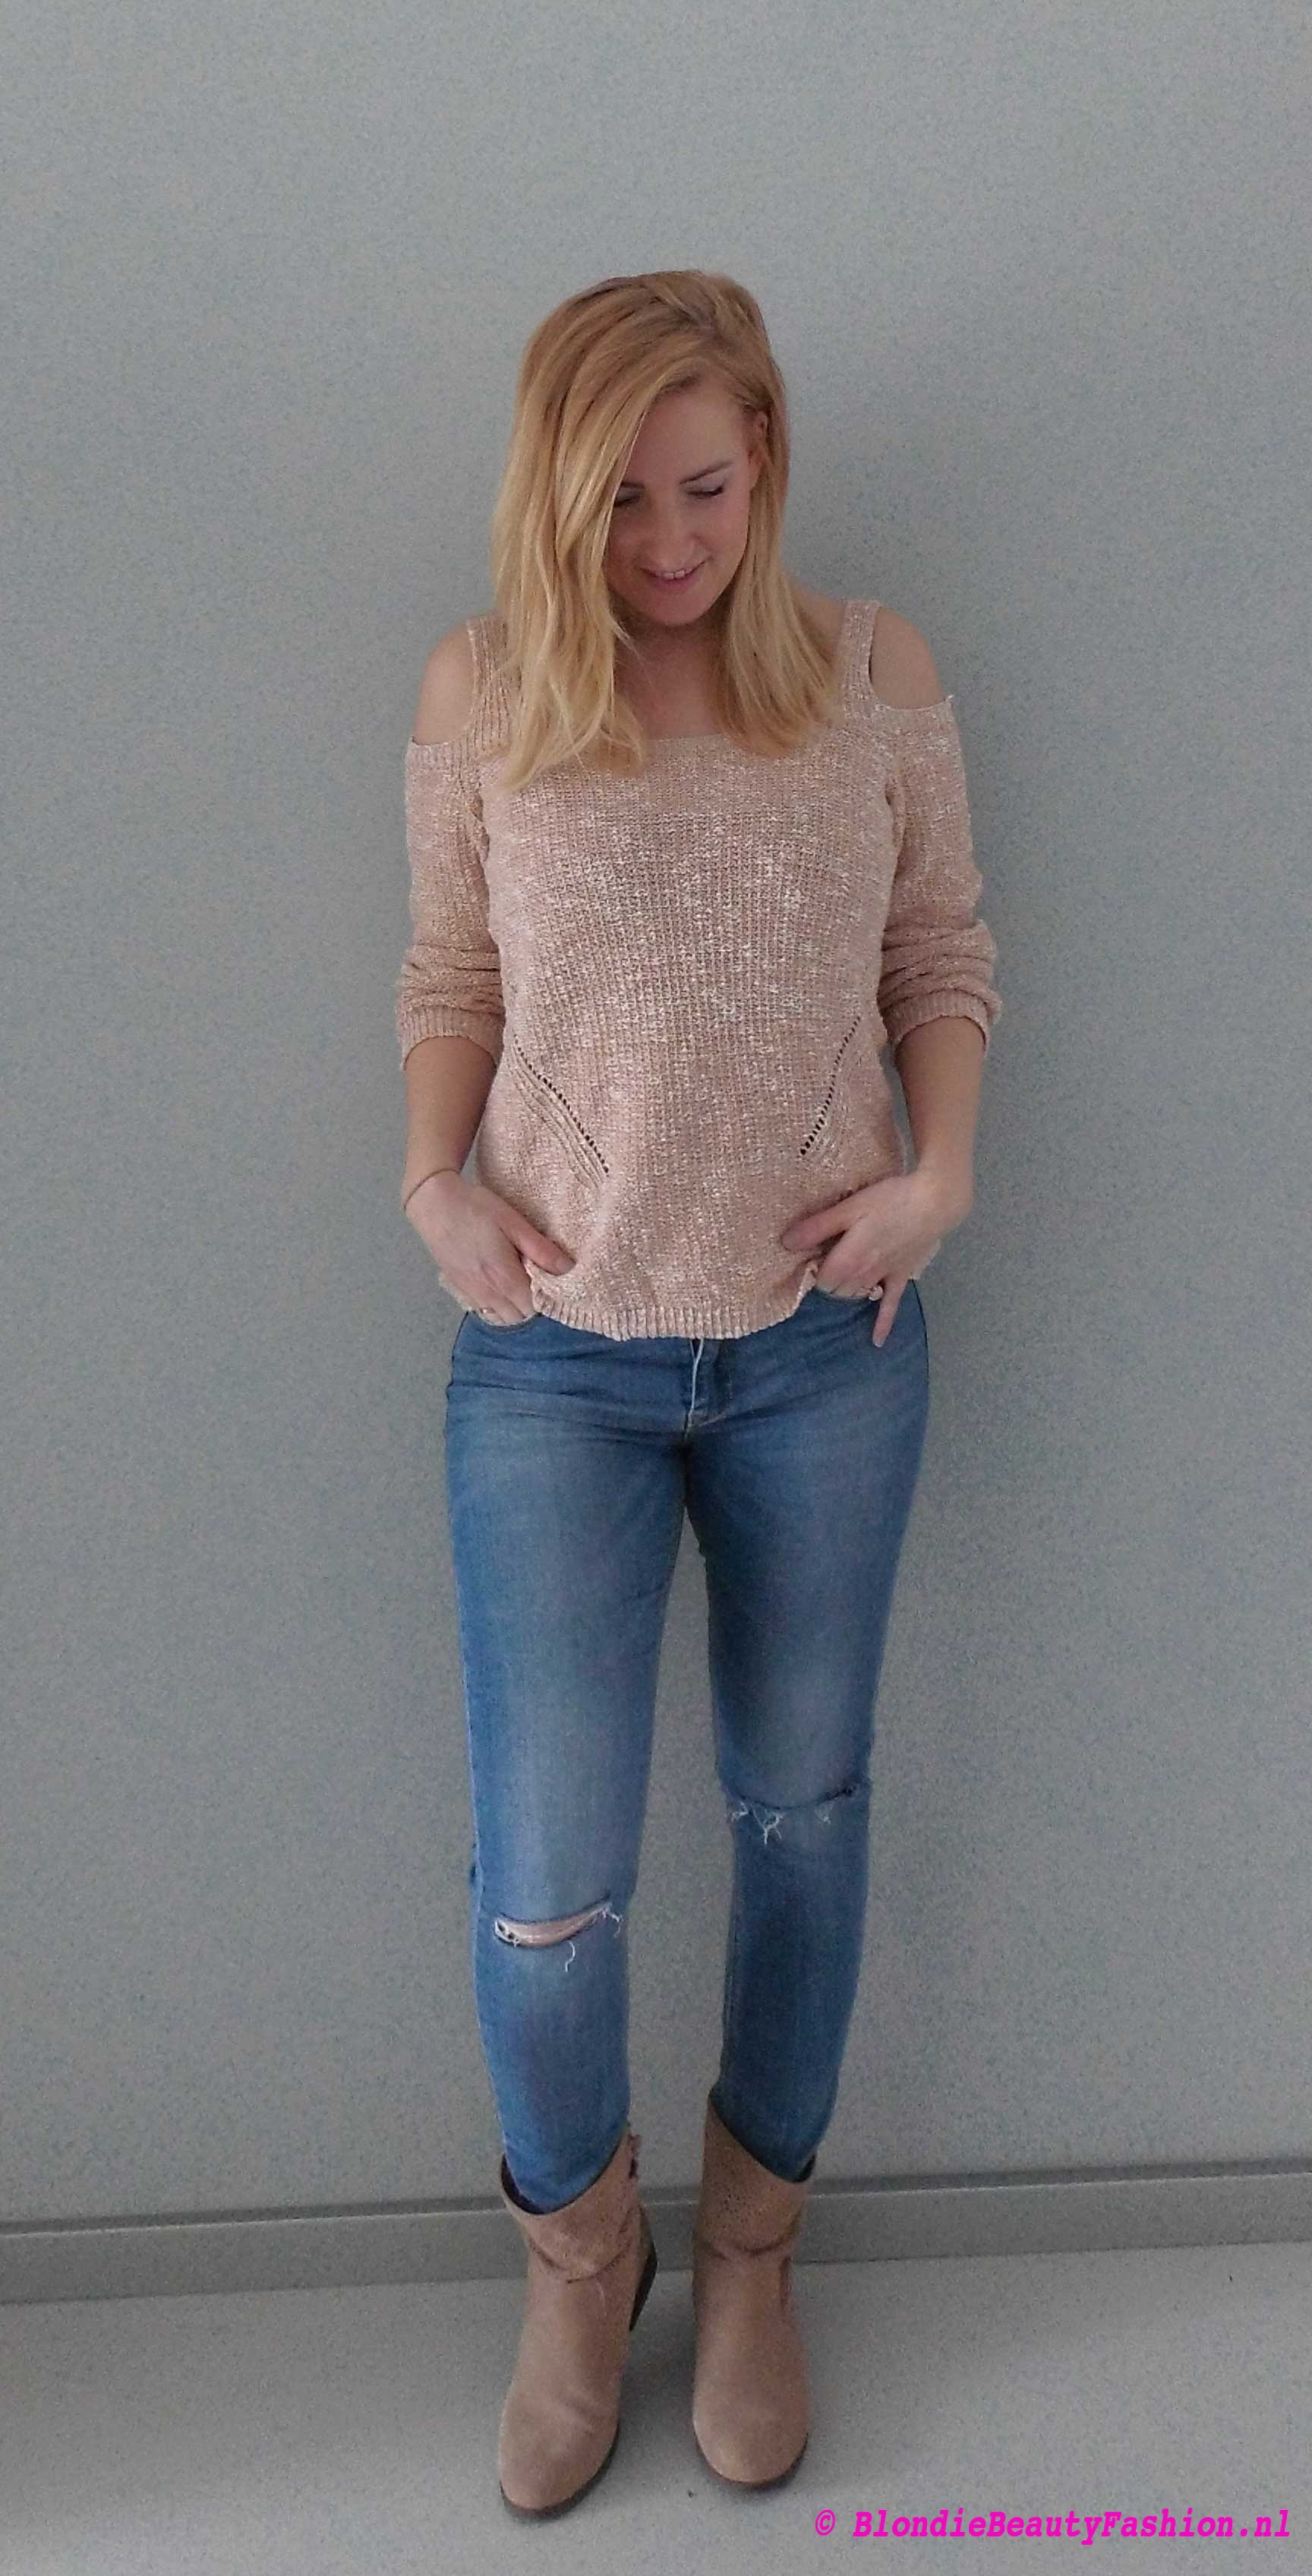 OOTD-lente-spring-outfit-style-casual-blote-schouders-trui-ripped-jeans-booties-boots-primark-stradivarius-5